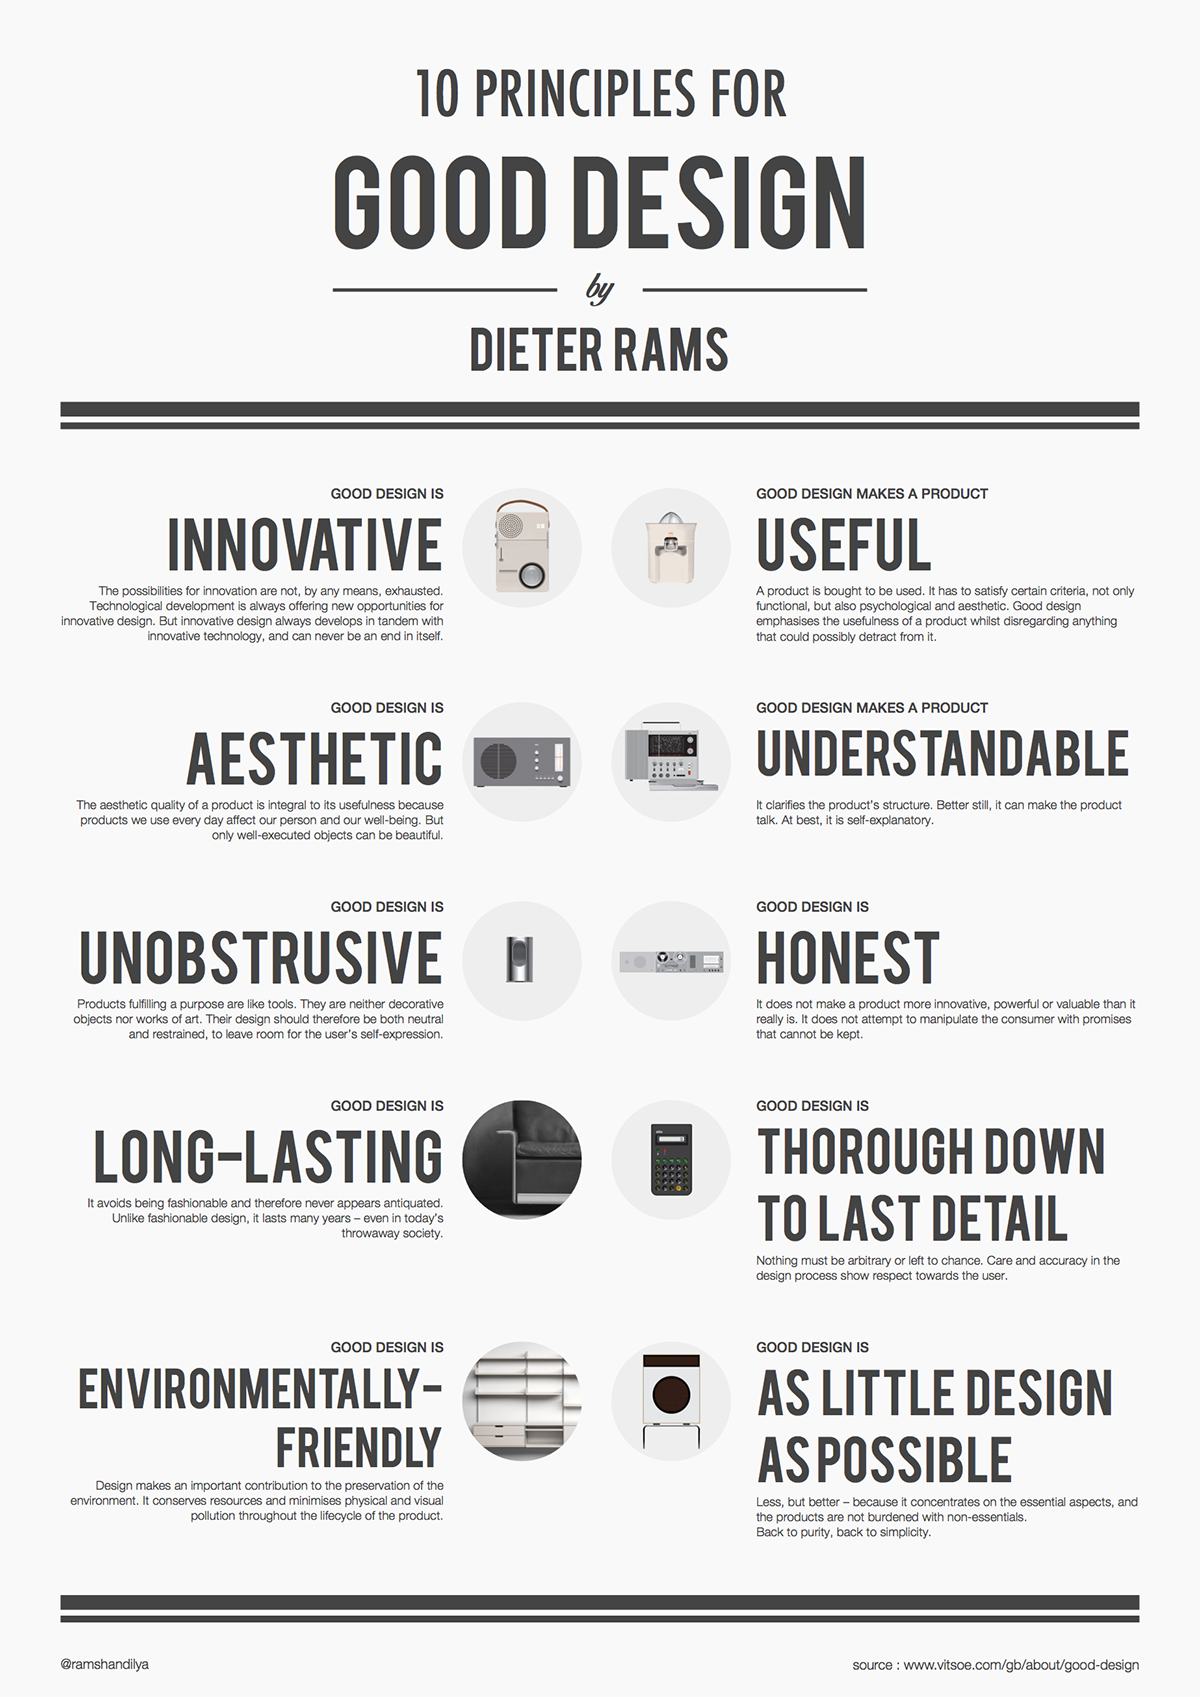 Dieter Rams 10 Principles For Good Design Illustrated As A Clean Simple Poster Learning Graphic Design Design Basics Design Theory